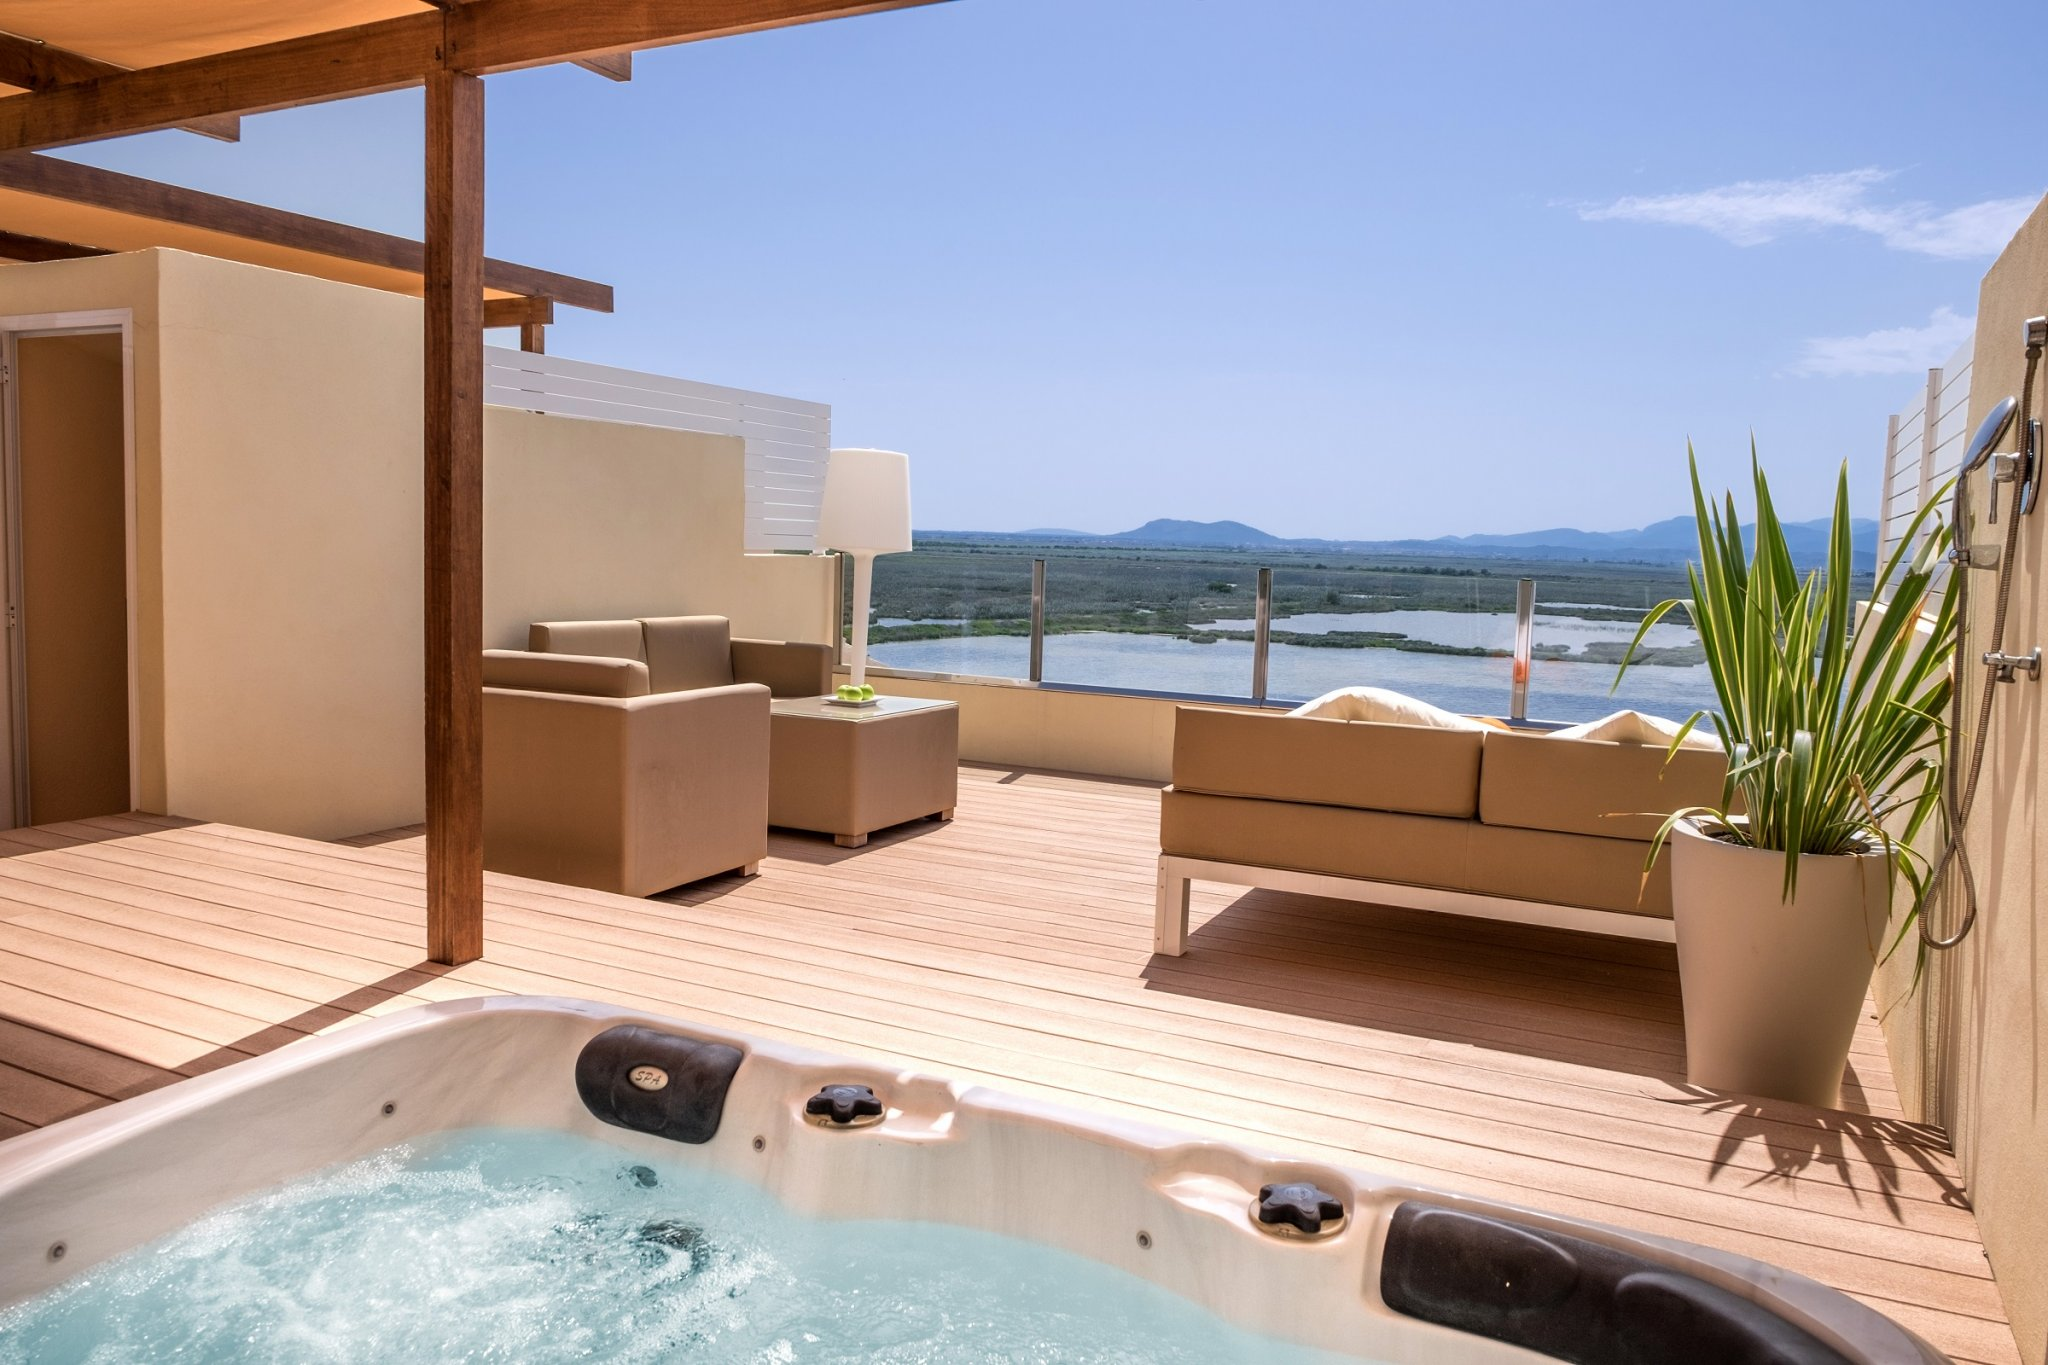 deck on premium room at Viva Blue and Spa cycling camp in Mallorca Spain